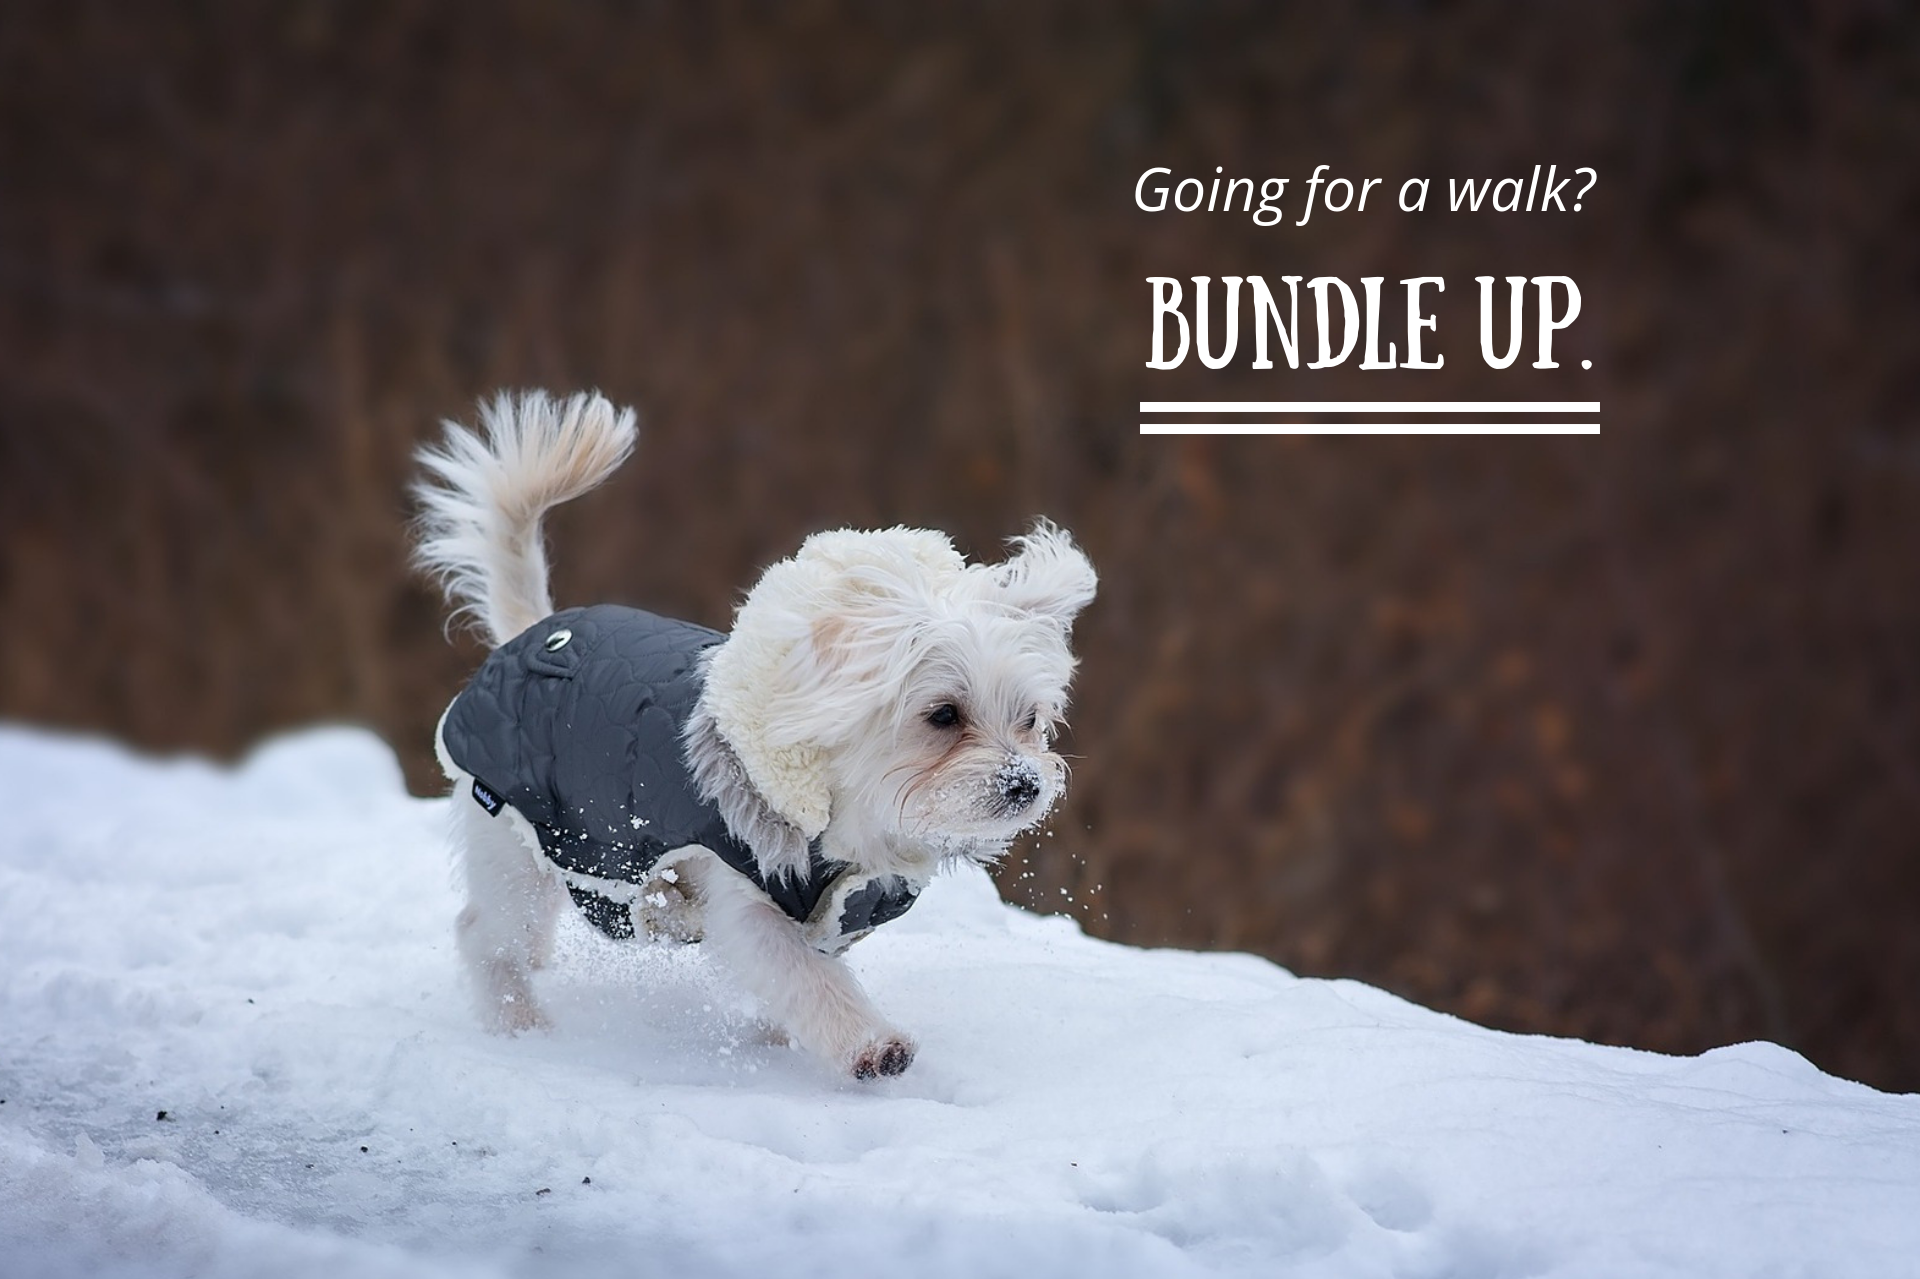 Going for a walk? Bundle up.